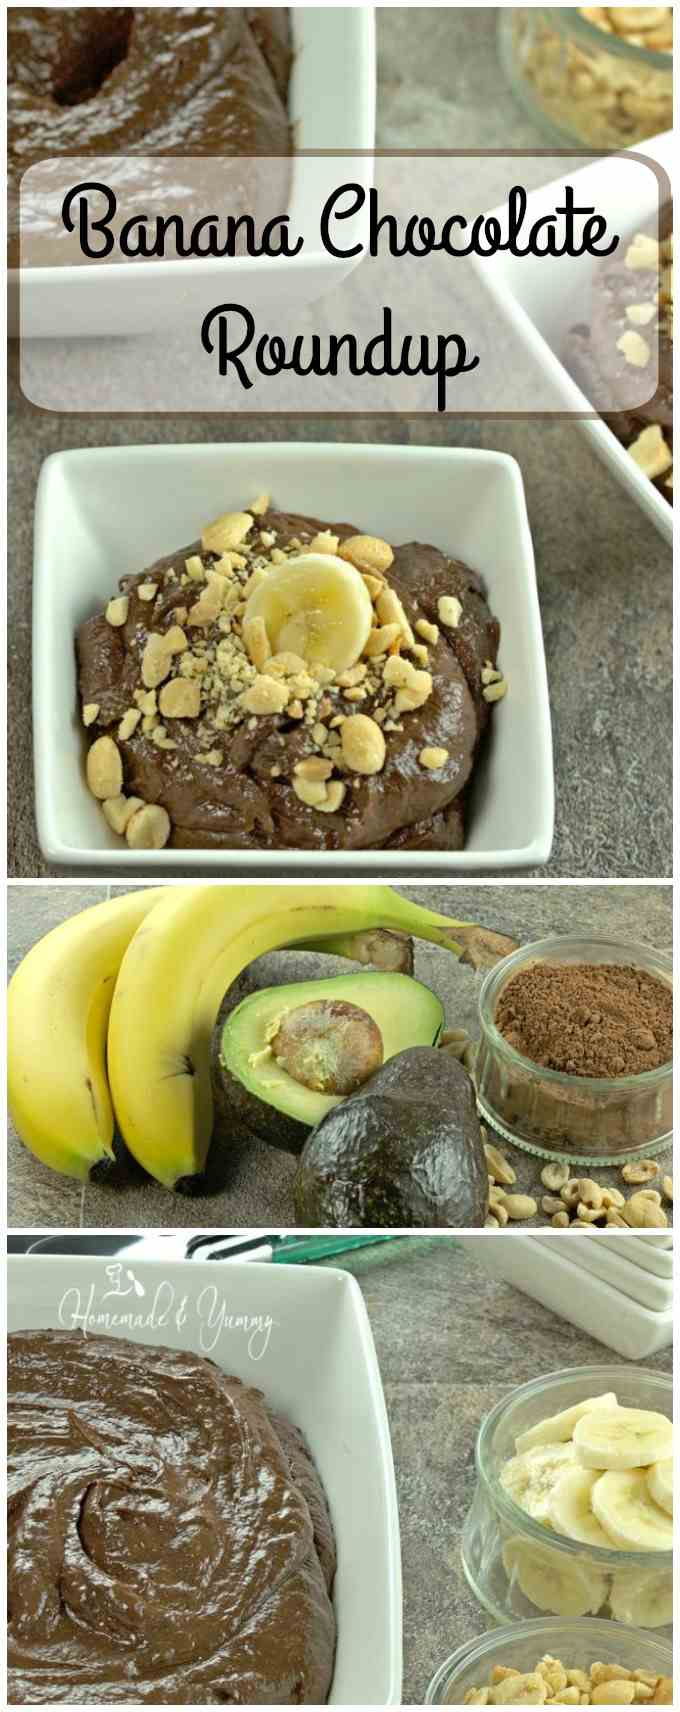 Looking for a great snack? This Banana Chocolate Roundup is the perfect choice. All natural, no sugar, gluten free. Healthy and delicious! | homemadeandyummy.com